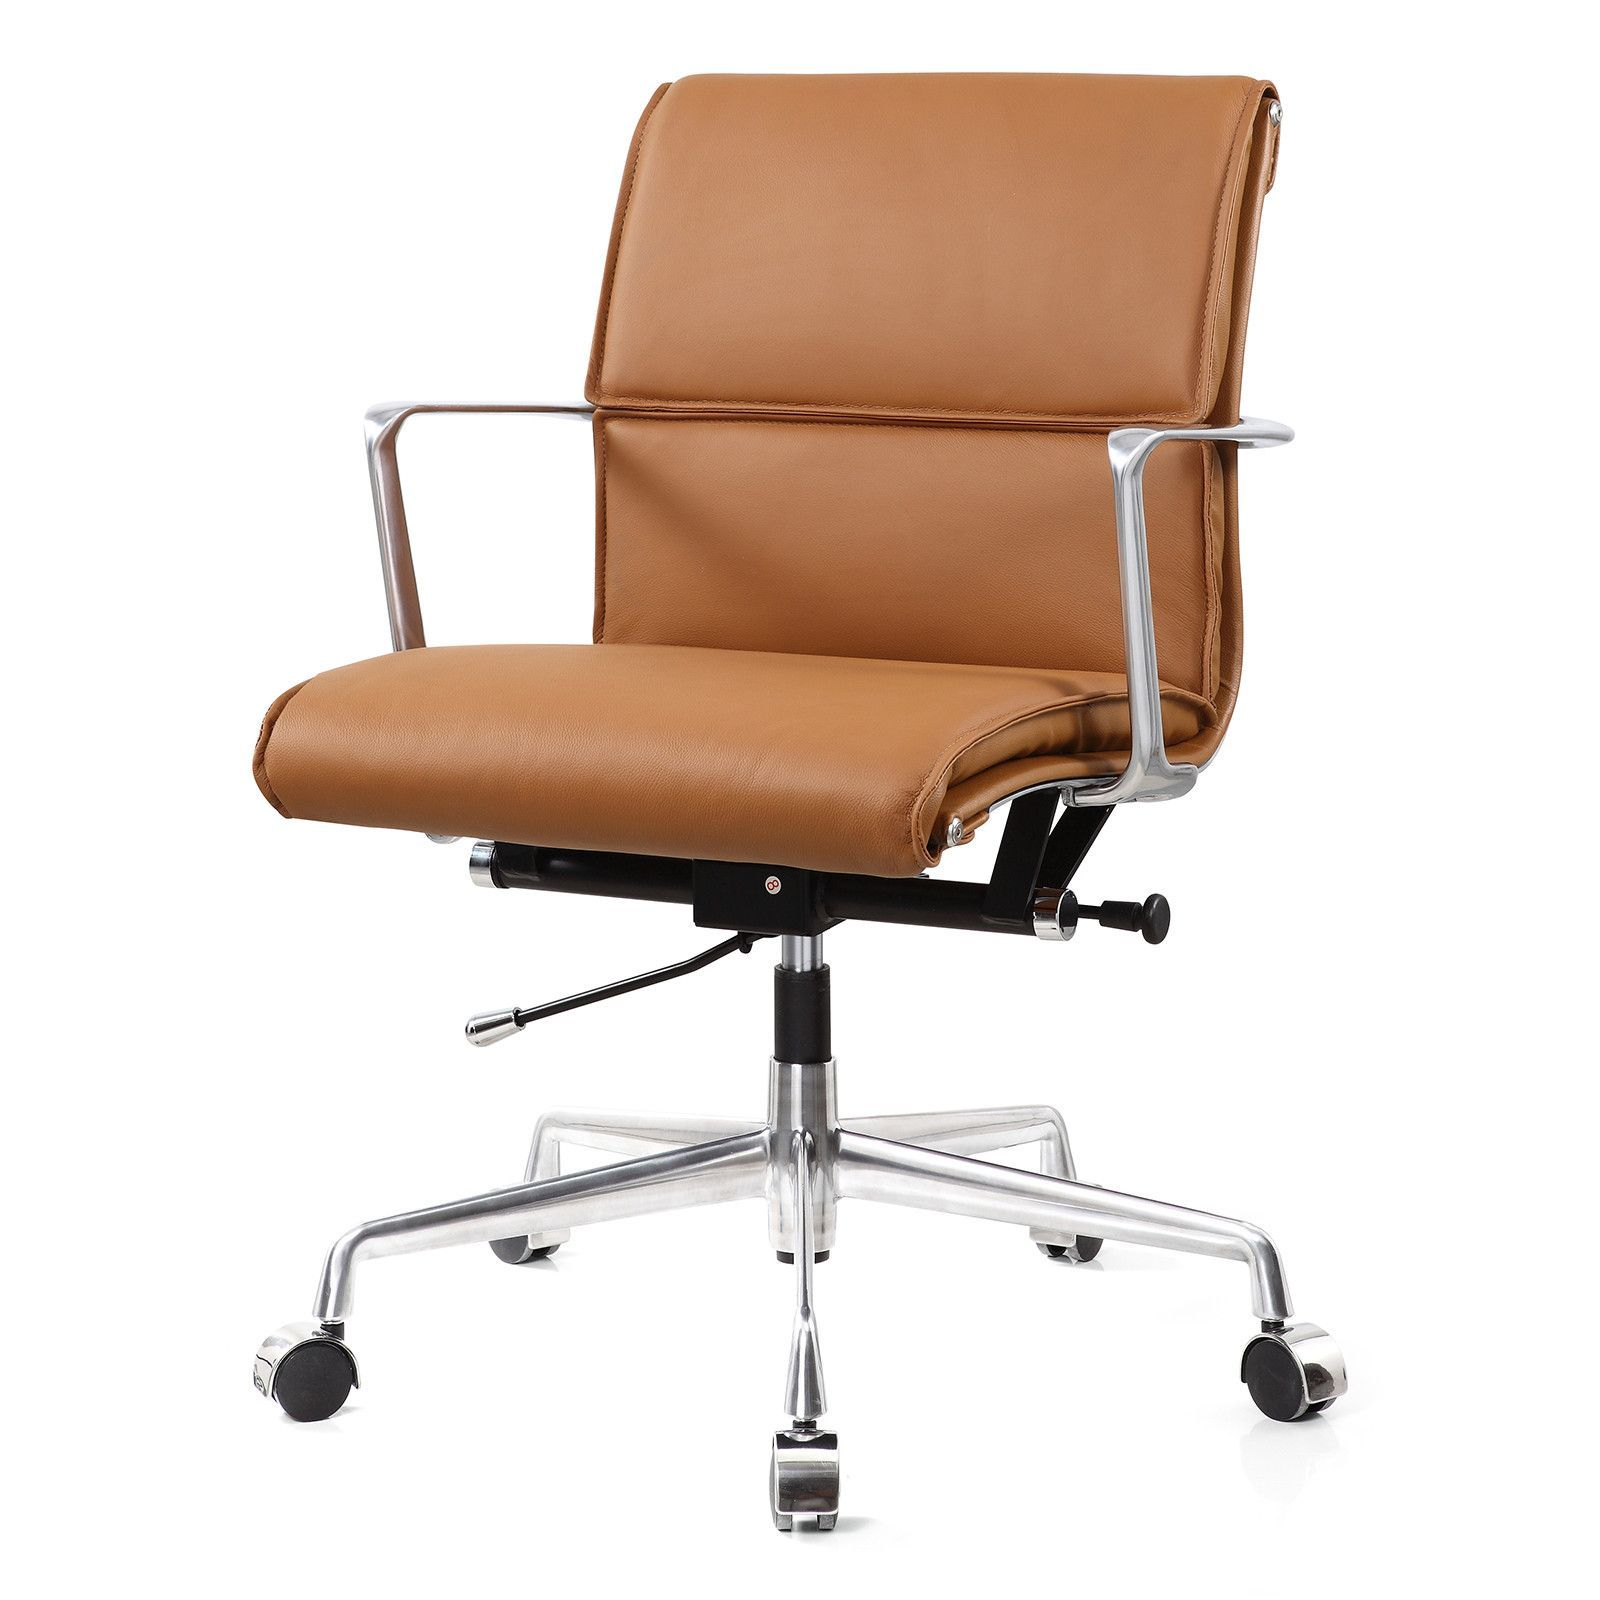 Modern black leather high back puter office desk chair Home